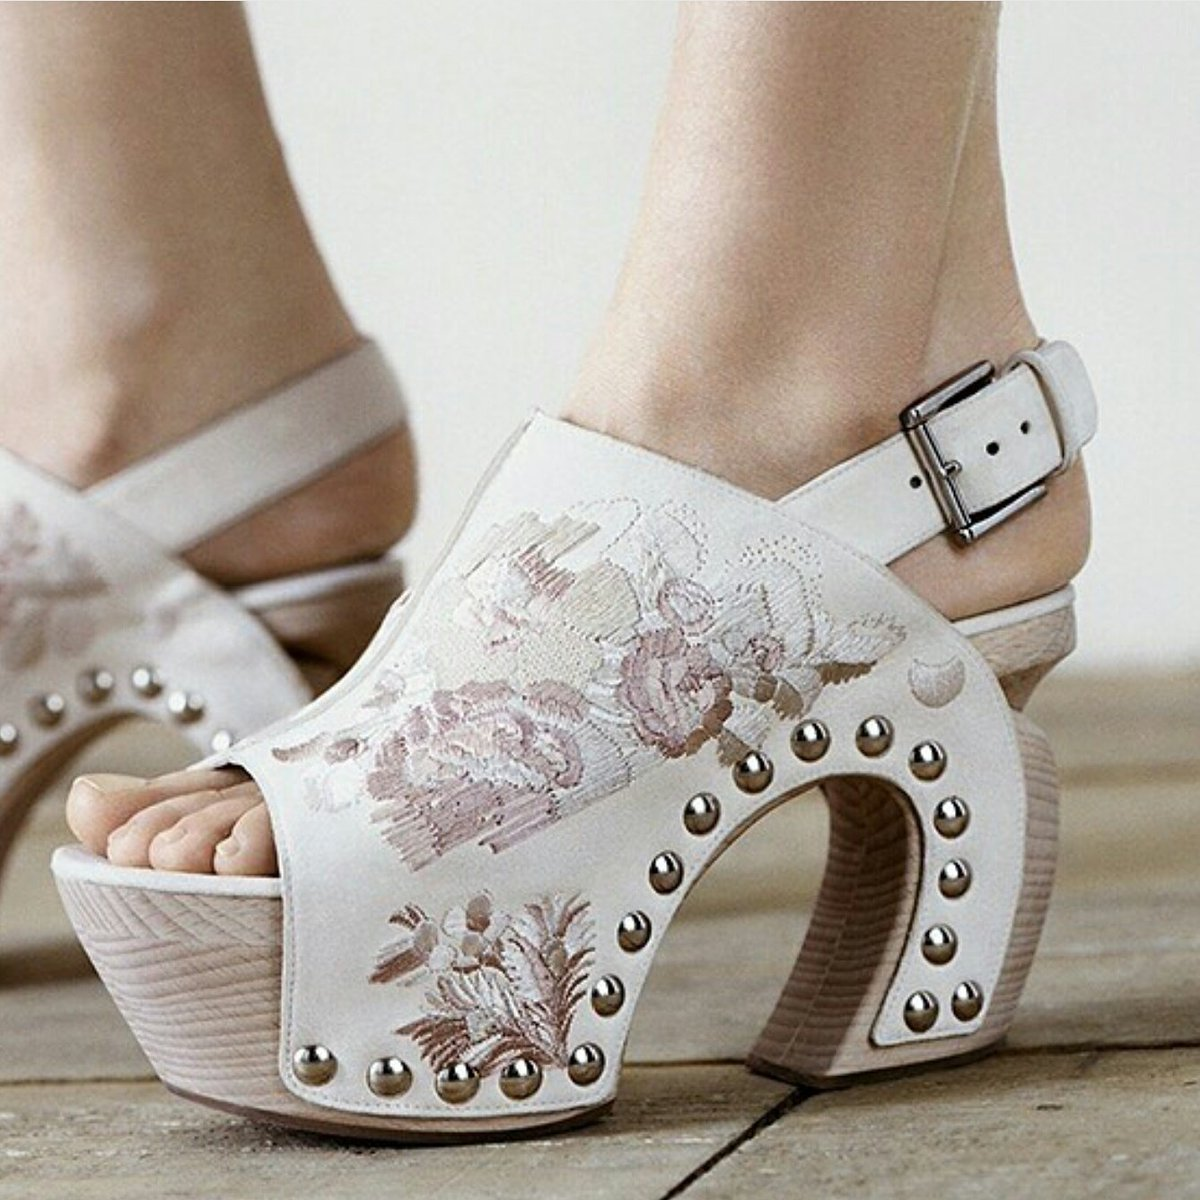 I love this twist on a clog w/ the hand-embroidered floral design #funshoefriday  What do u think?#repost @worldmcqueen #fashion  #shoes<br>http://pic.twitter.com/kL5RHYLtWt